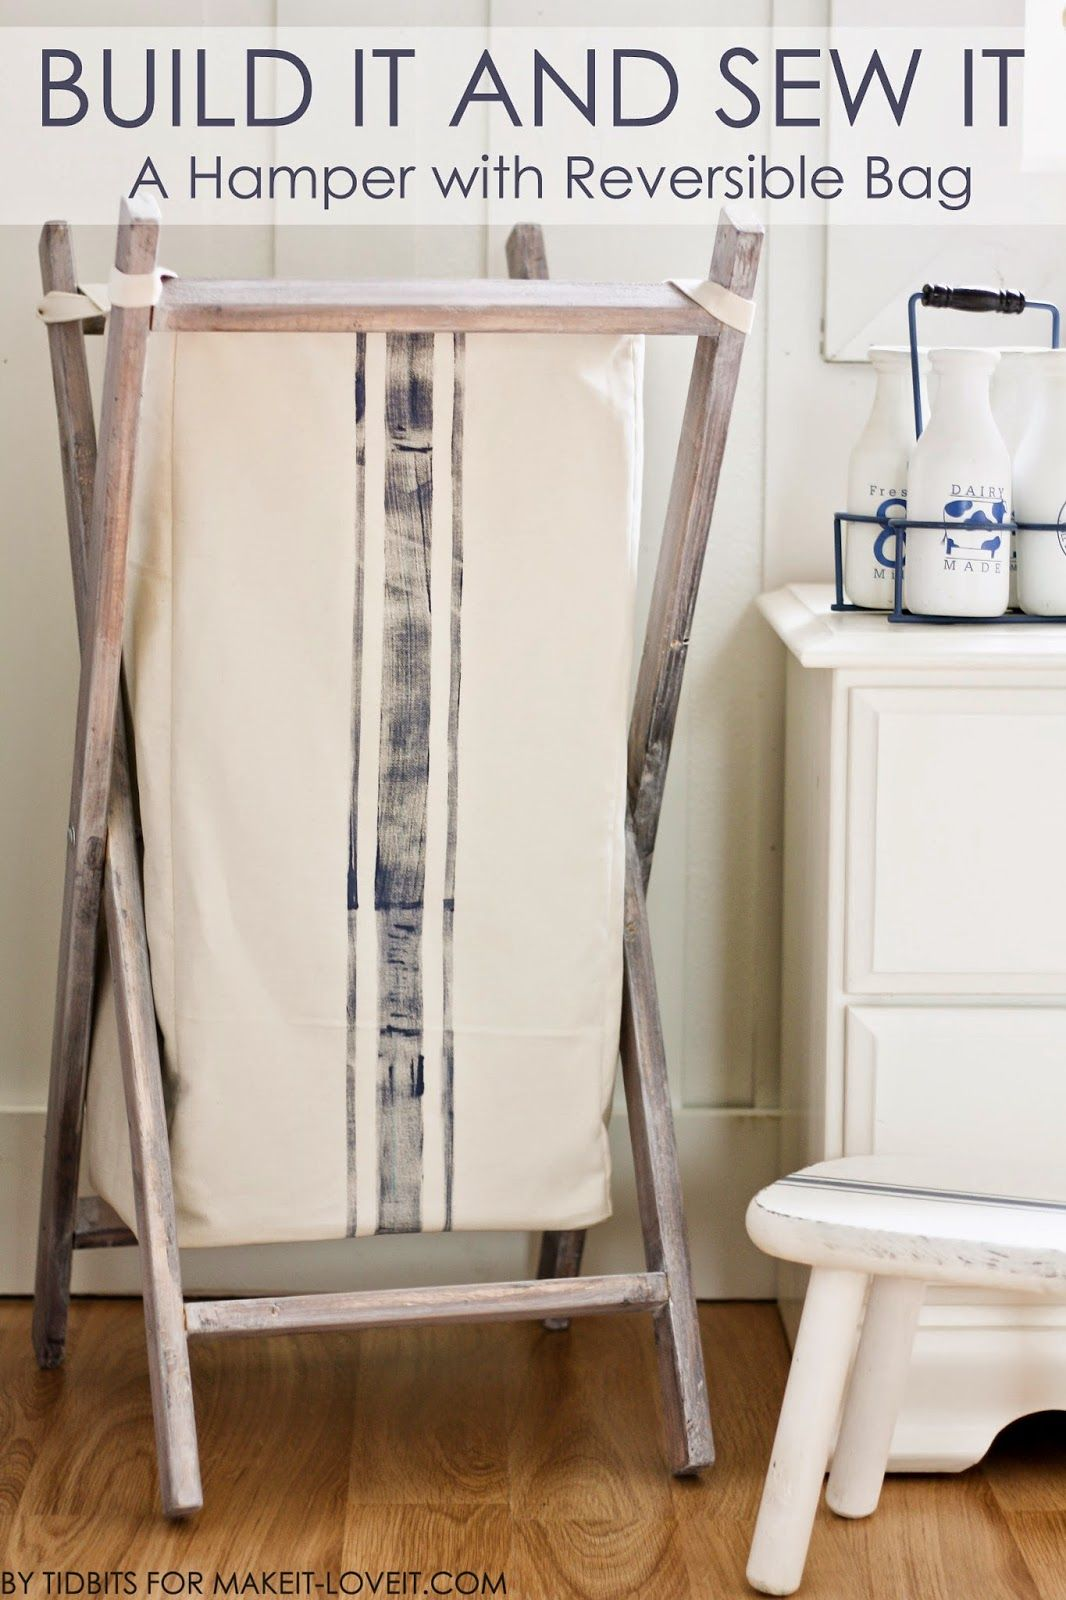 Diy Foldable Wood Hamper With Reversible Bag Insert Laundry